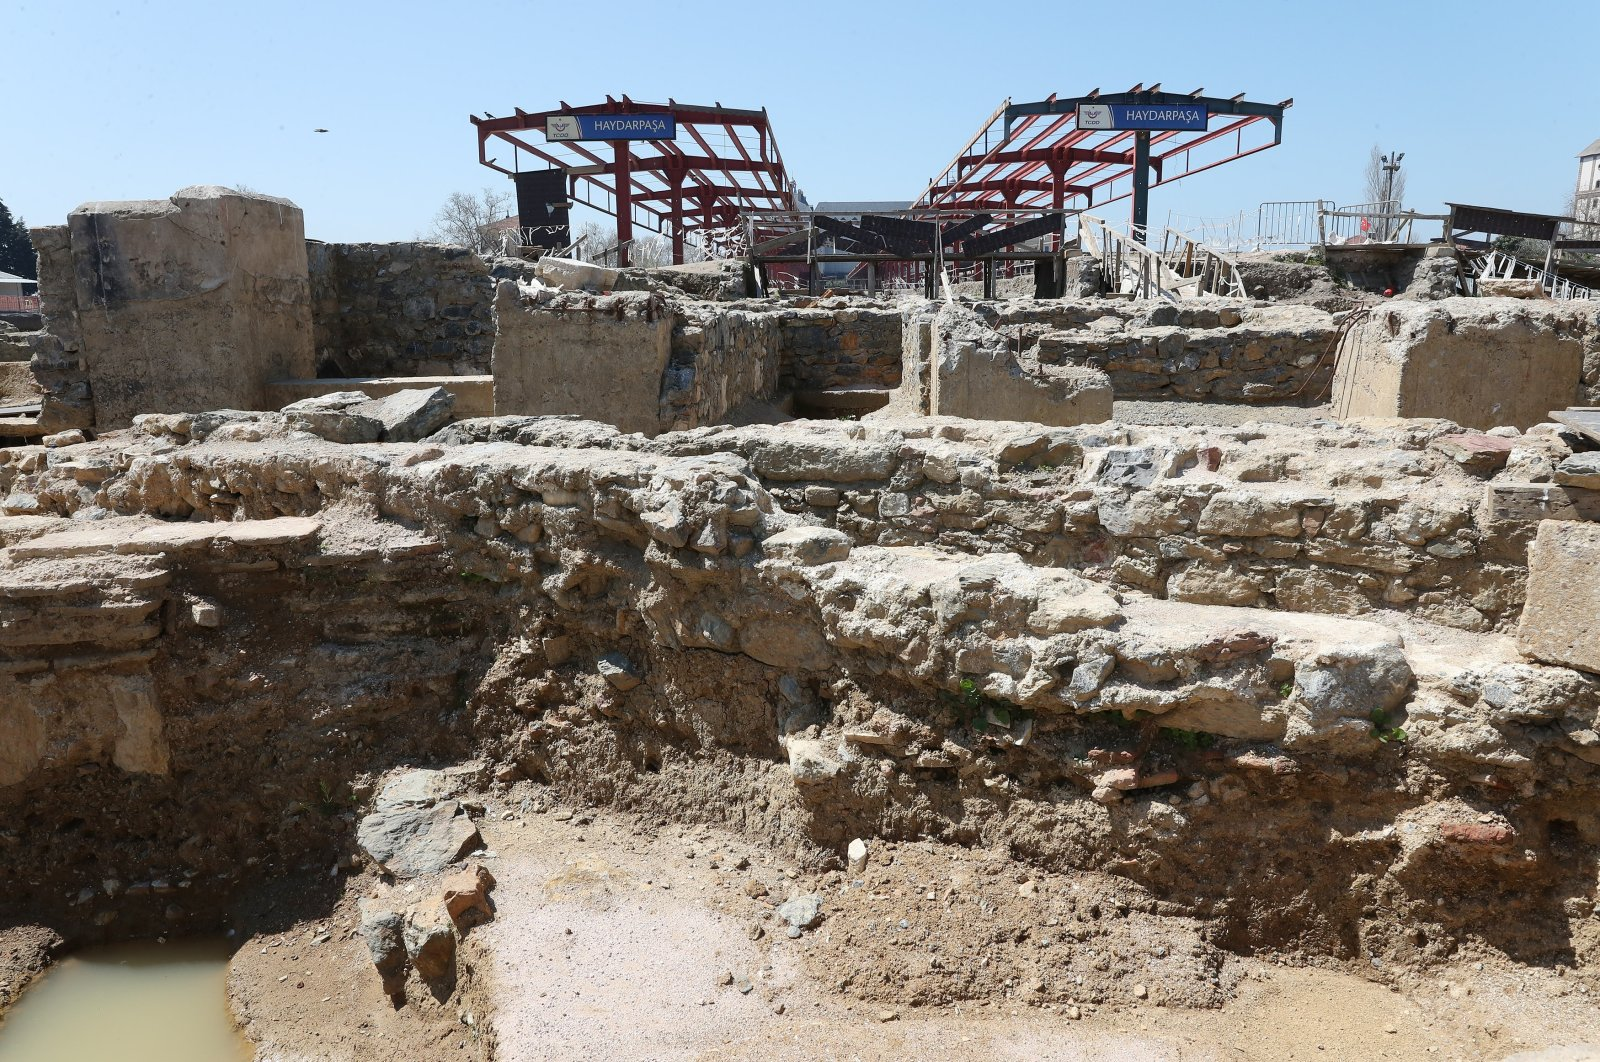 Excavations reveal ancient structures that can be seen against the backdrop of the out-of-use Haydarpaşa Train Station's platforms in theKadıköy district of Istanbul, Turkey, May 17, 2021. (DHA Photo)